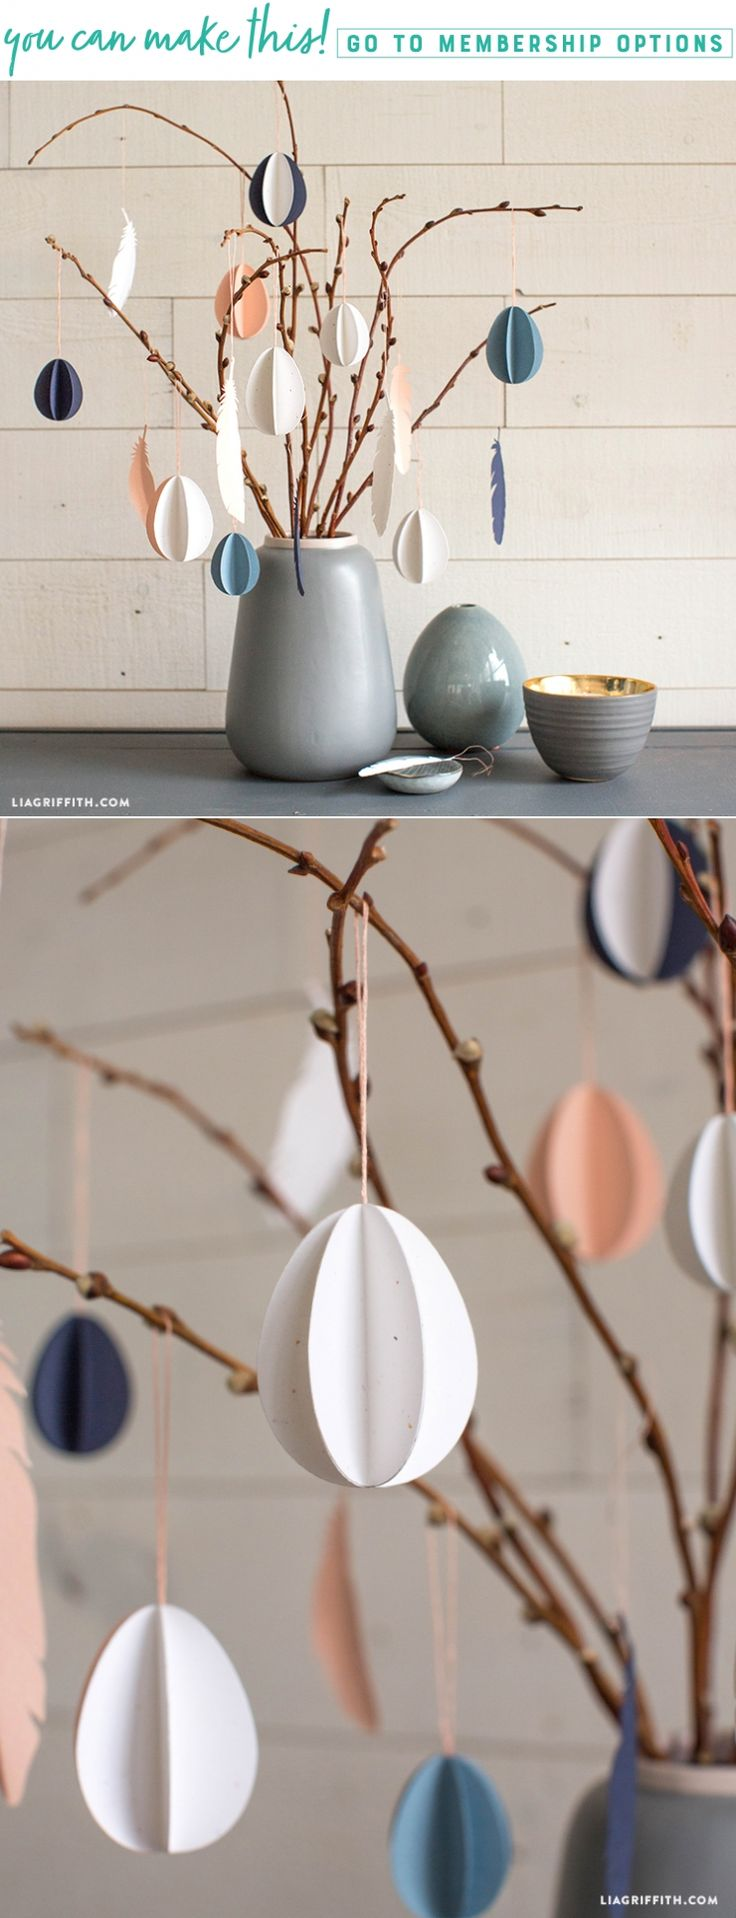 O Easter Tree  Dress up your Easter tree with these easy 3D paper eggs. This project is inspired by the Scandinavian tradition of påskris. We love the idea of dressing up twigs with colorful eggs for Easter! Glad Påsk (Happy Easter)! https://liagriffith.com/3d-paper-egg-easter-tree-ornaments/ * * * #easter #easteregg #eastereggs #paskris #pask #happyeaster #eastercrafts #paper #papercut #paperlove #easter2018 #eastertree #swede #sweden #swedish #diy #diycraft #diycrafts #diyidea #diyideas…